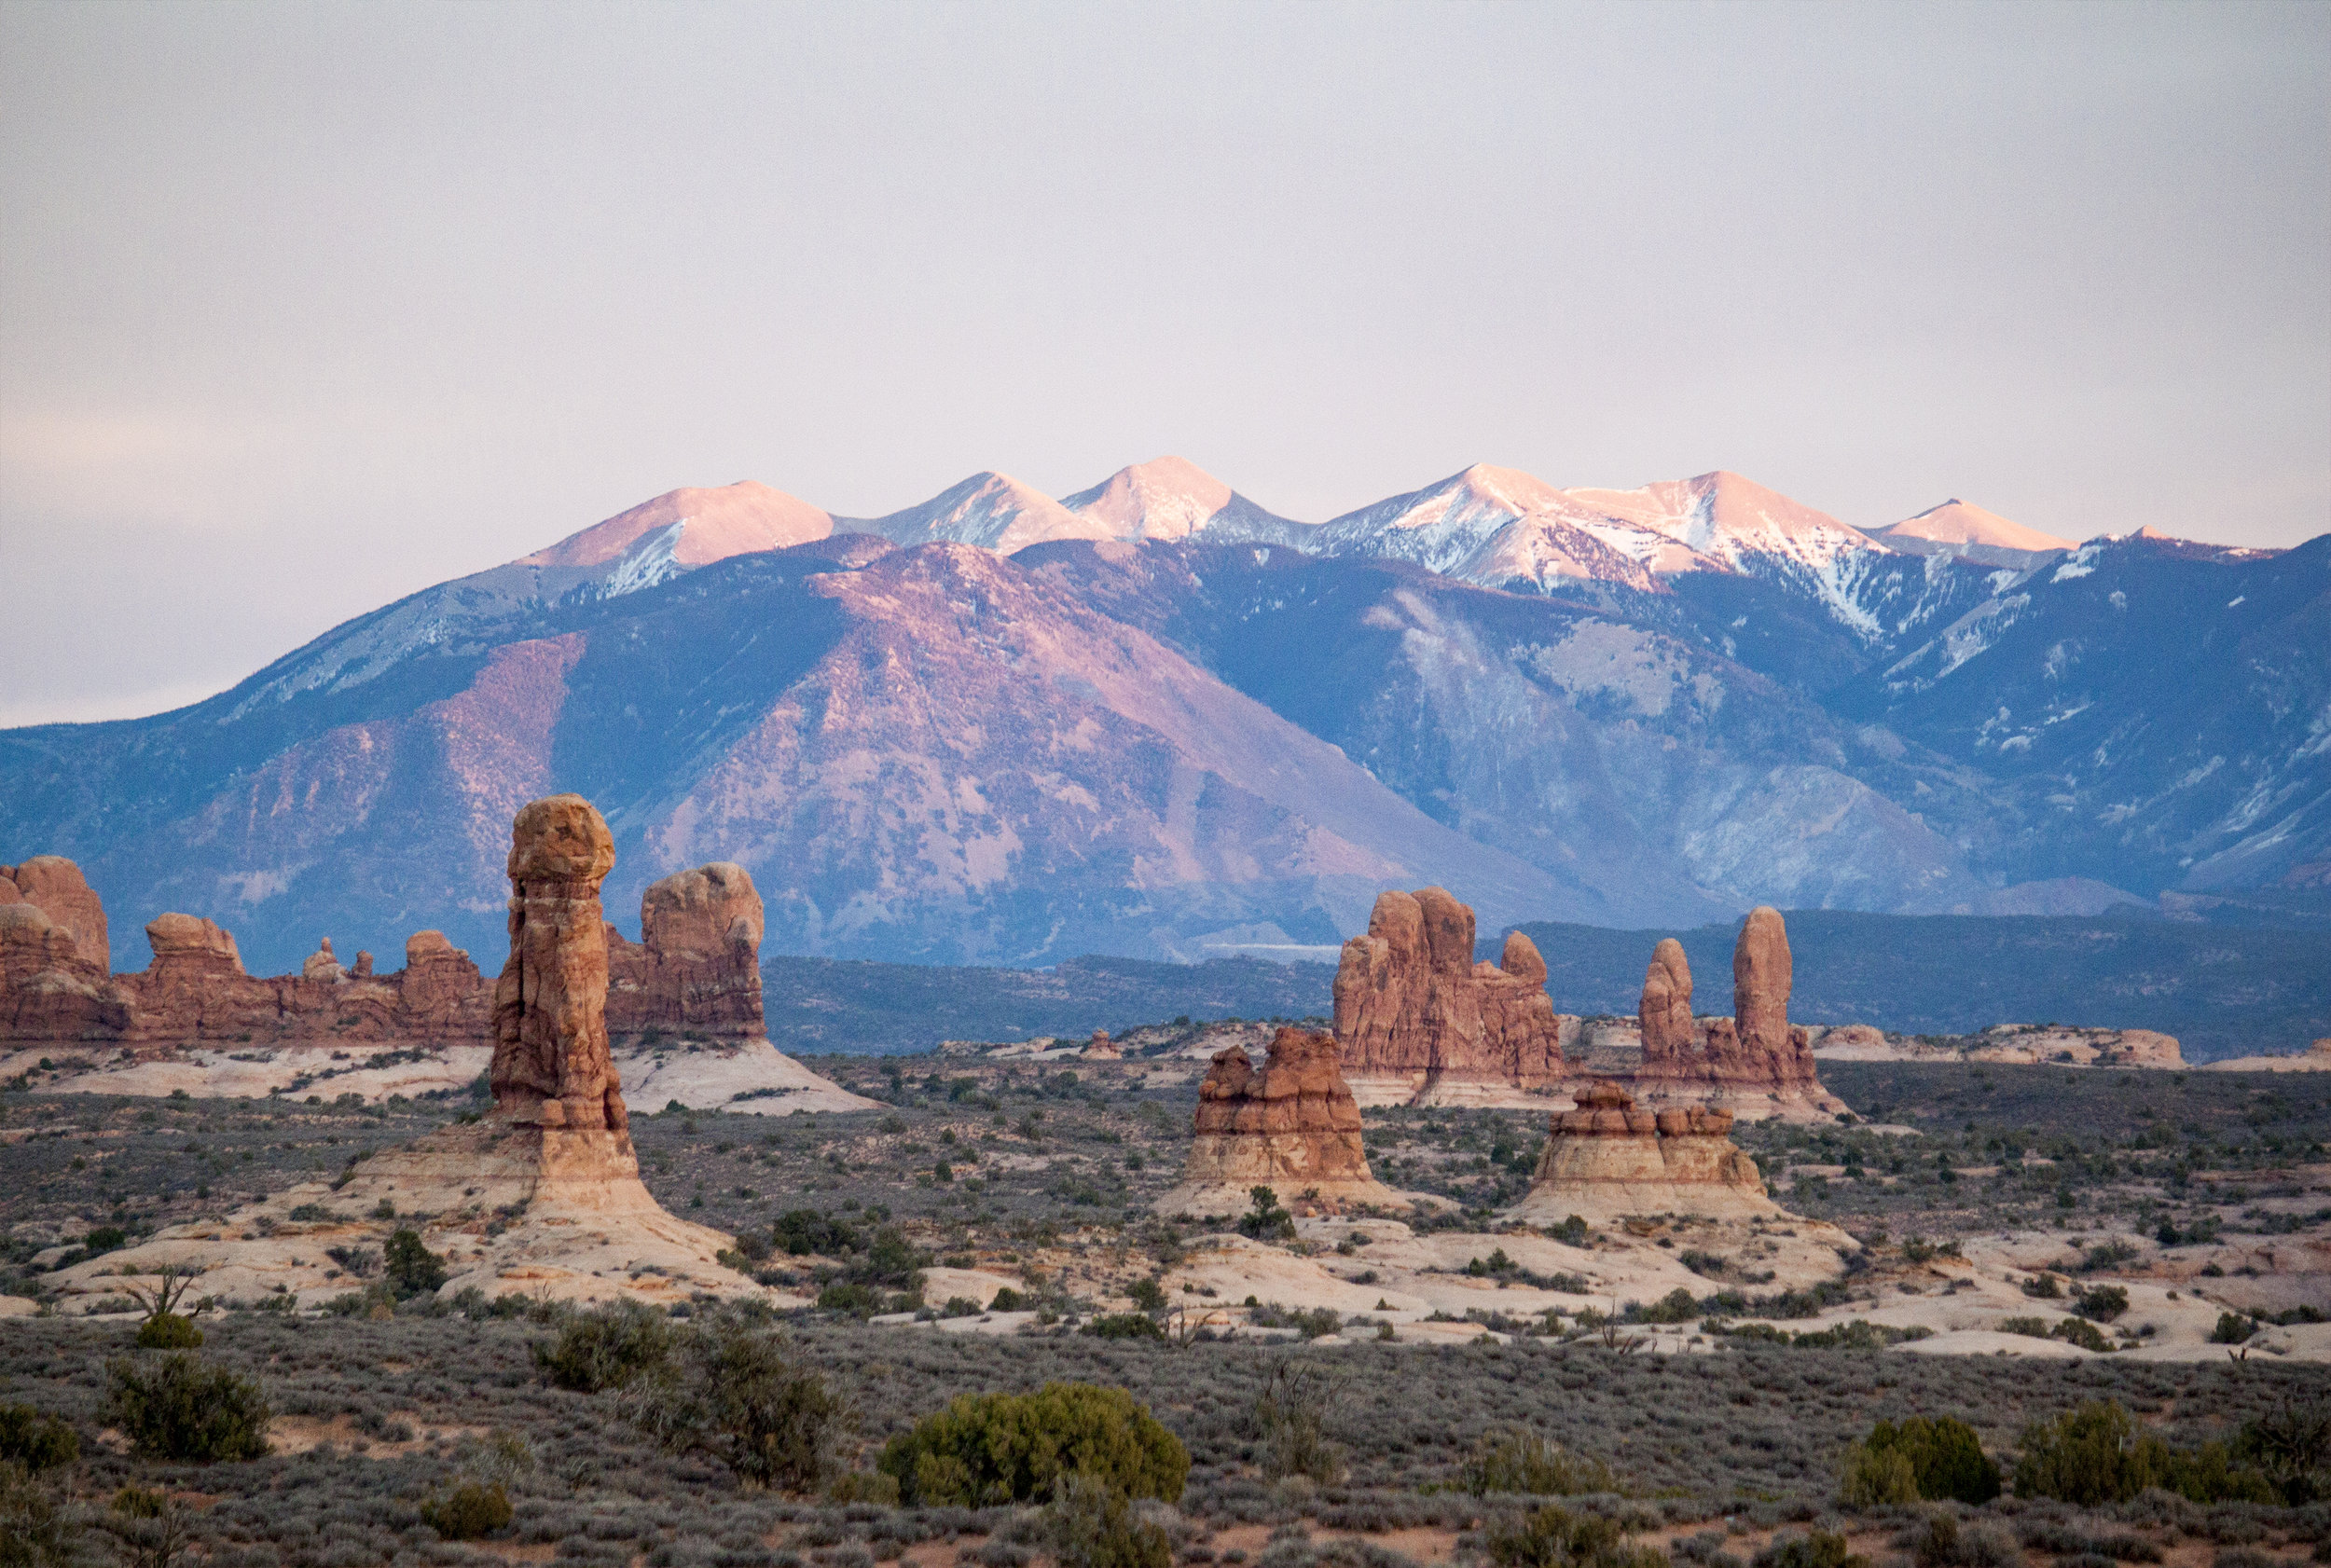 La Sal mountains behind arches in Arches National Park.  Photo by Alison Travis .